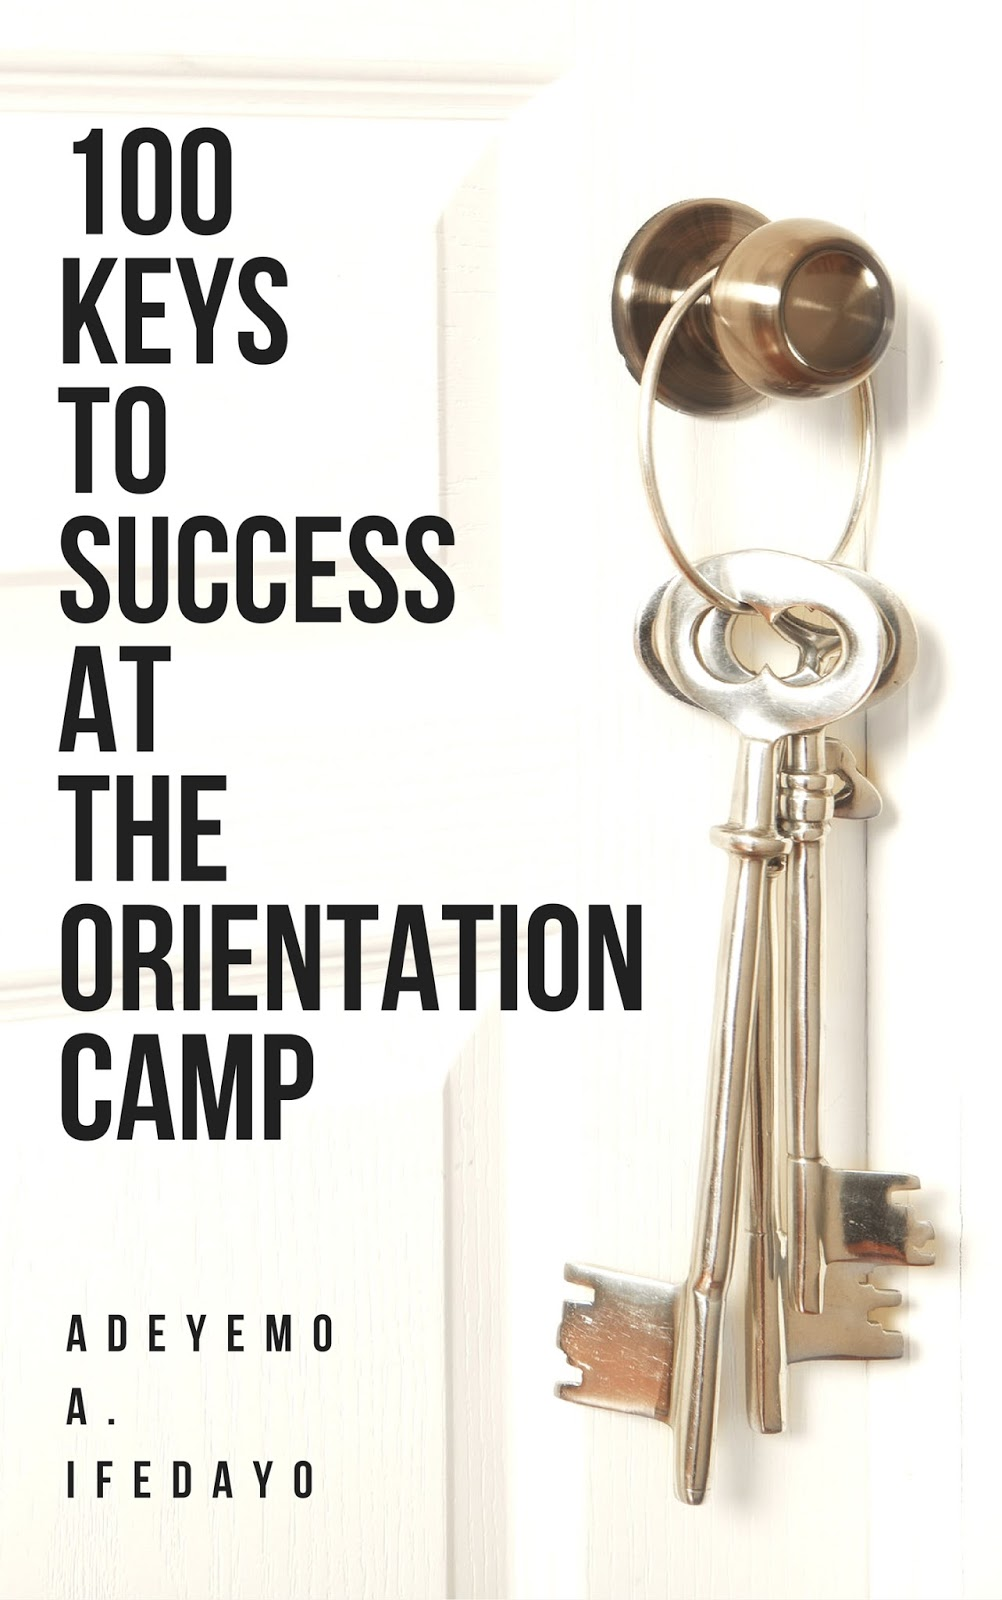 100 Keys To Success At The Orientation Camp by Adeyemo A. Ifedayo